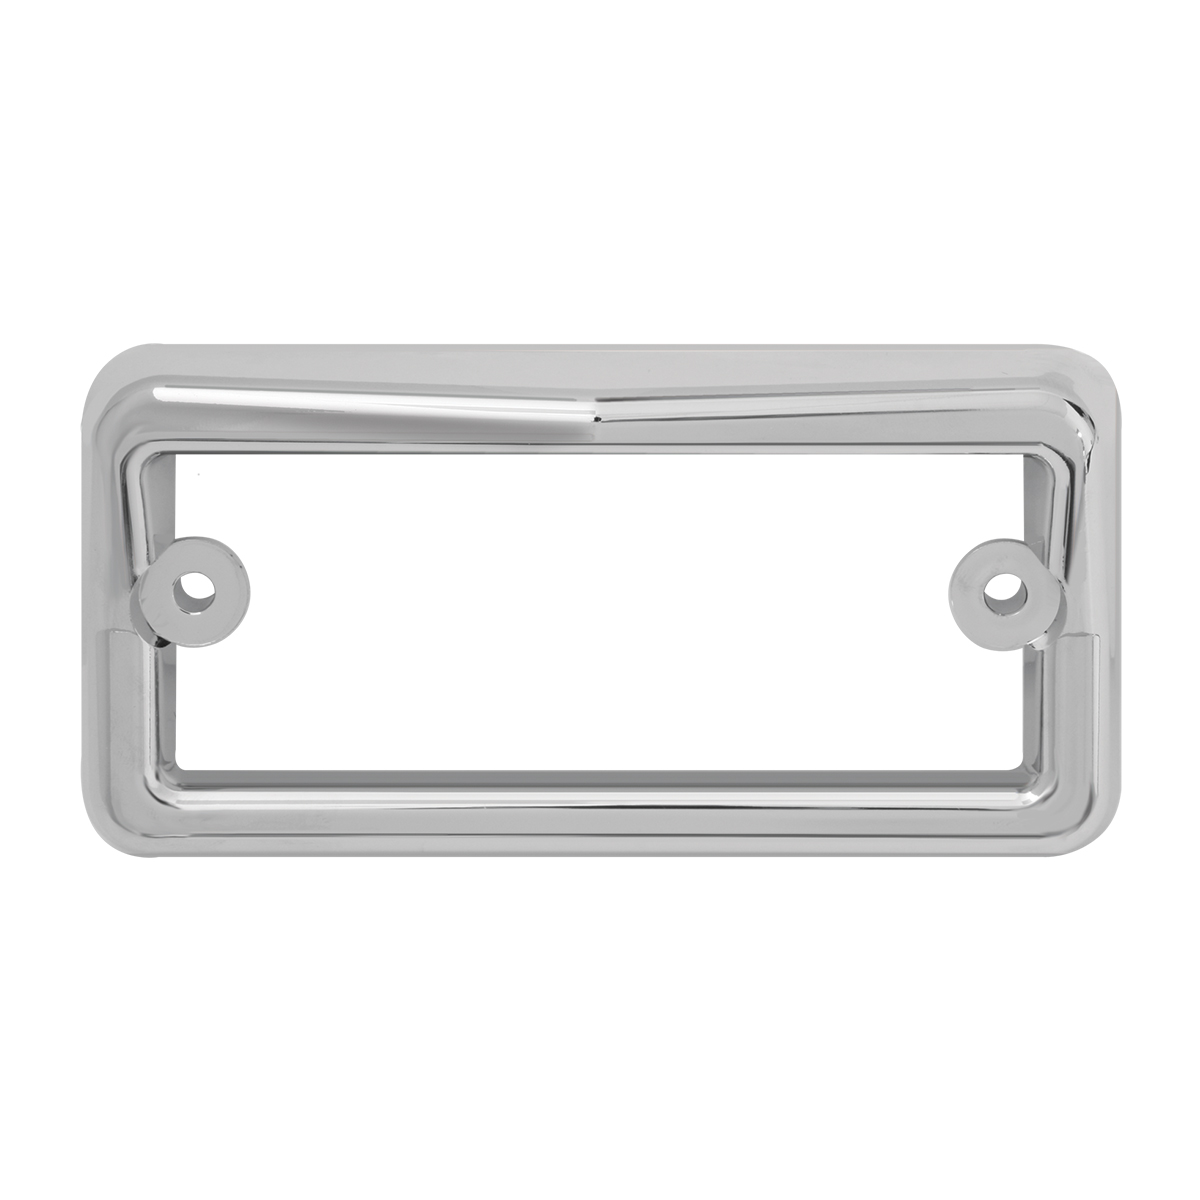 96910 Rectangular Cab Visor Light Bezel for Freightliner